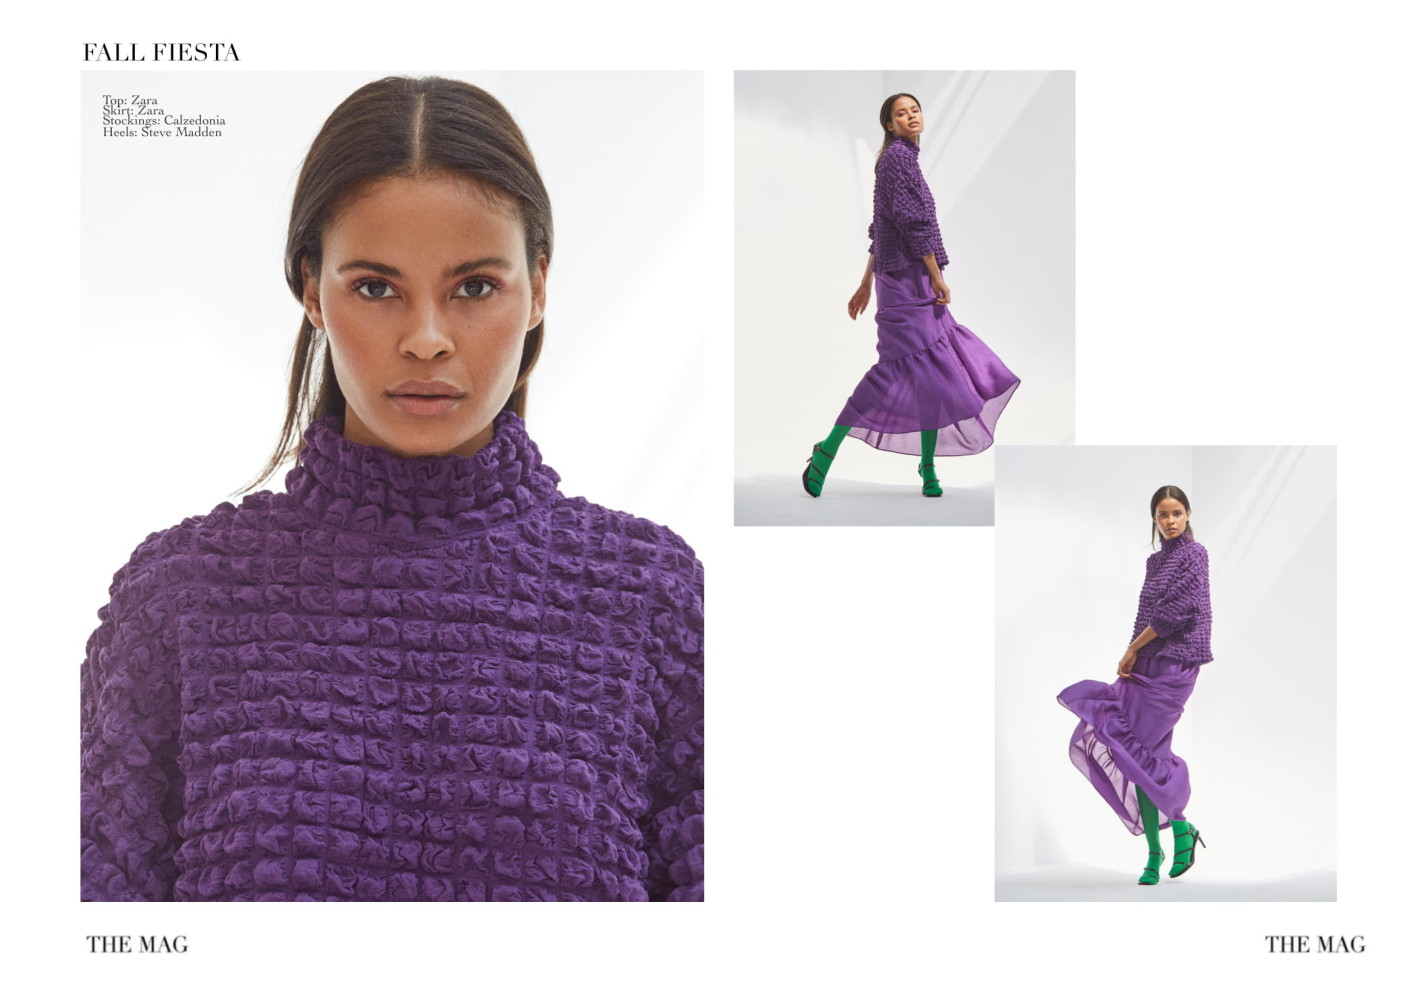 ZAINA GOHOU BY VERENA VOETTER FOR THE MAG FALL 2020 #INTERVIEW